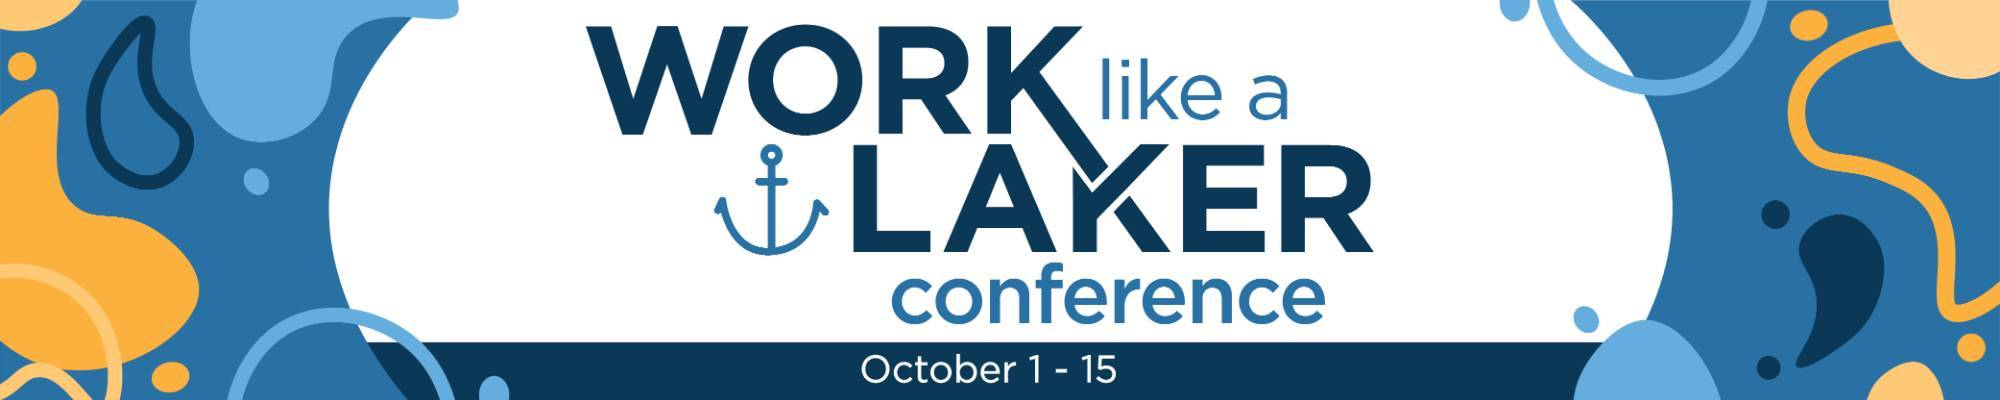 Work Like a Laker Conference